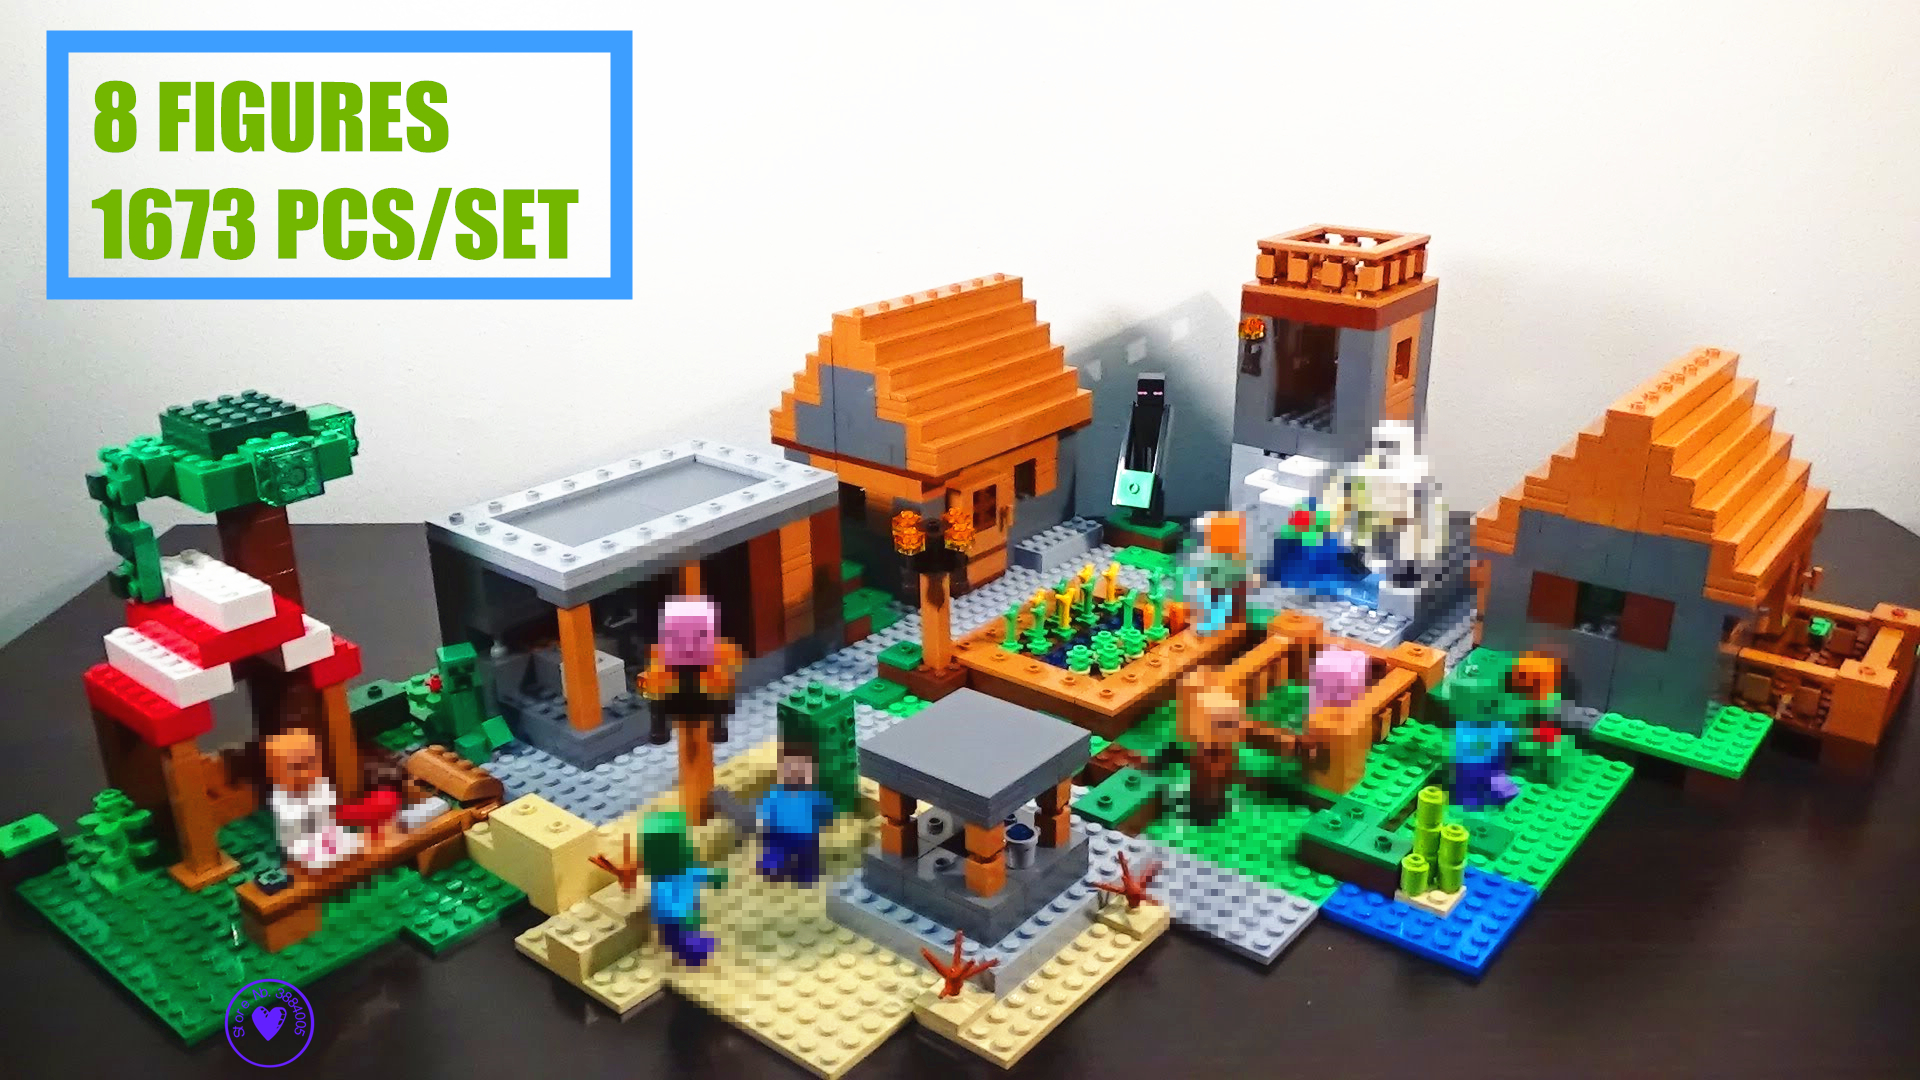 New my worlds Village Minecrafted fit legoings minecrafted figures city Model building blocks bricks 21128 diy toys kid gift